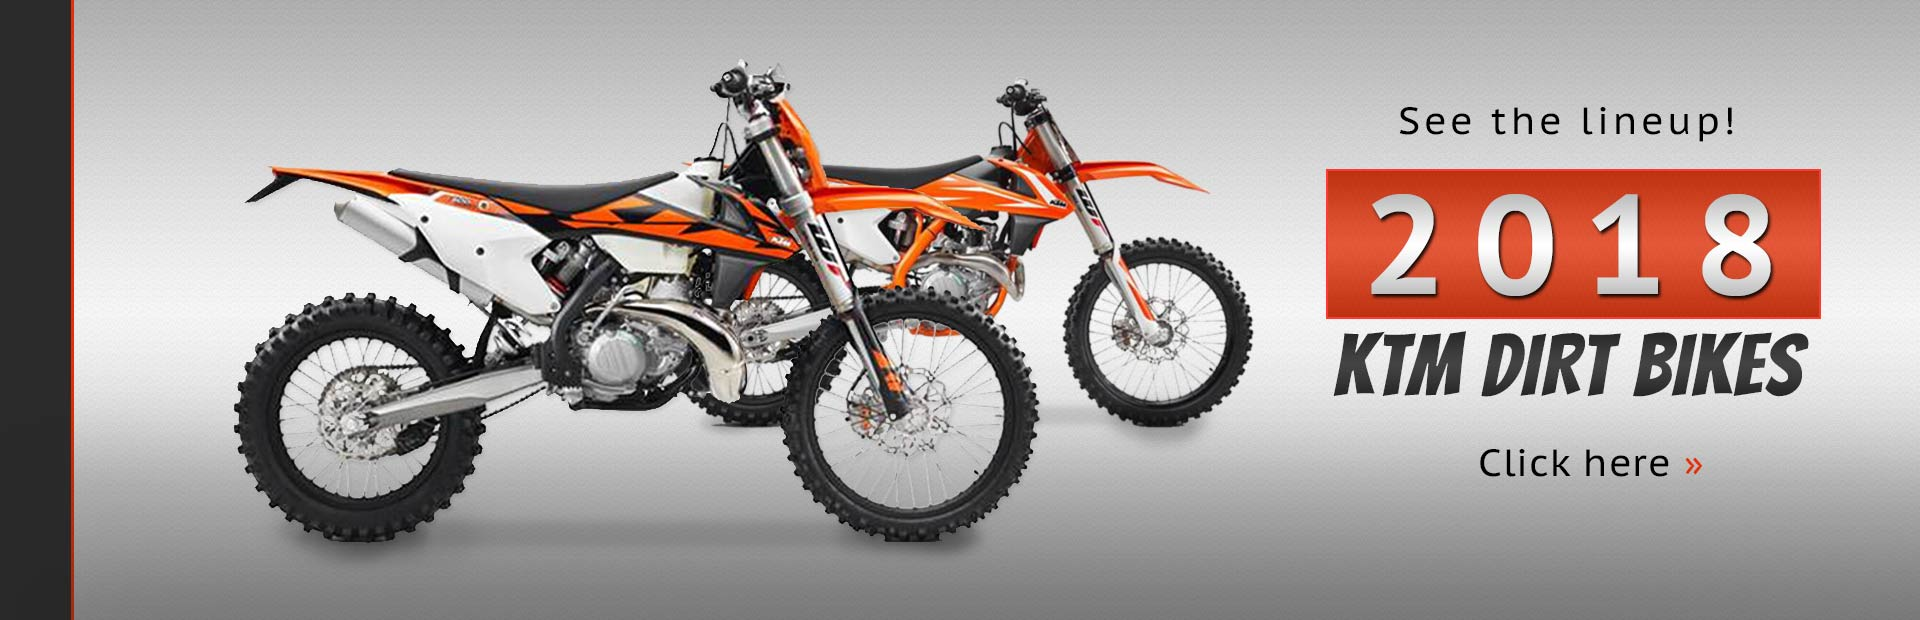 2018 ktm motocross bikes. beautiful bikes click here to view the lineup of 2018 ktm dirt bikes and ktm motocross bikes e